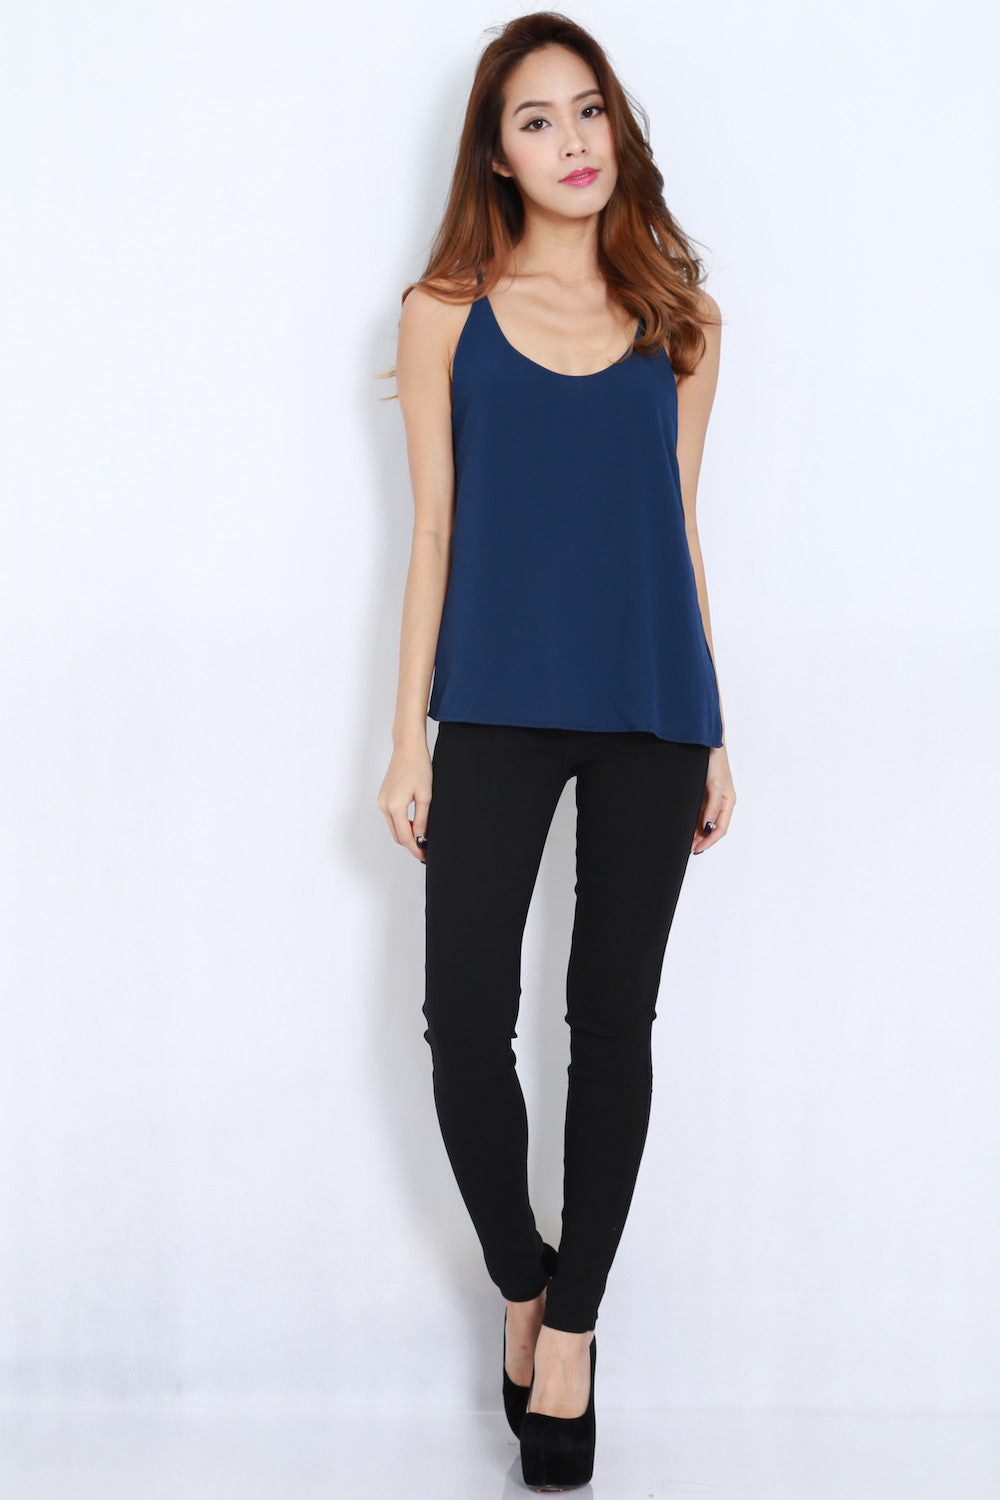 Fitting Jeans (Black) -  - 6